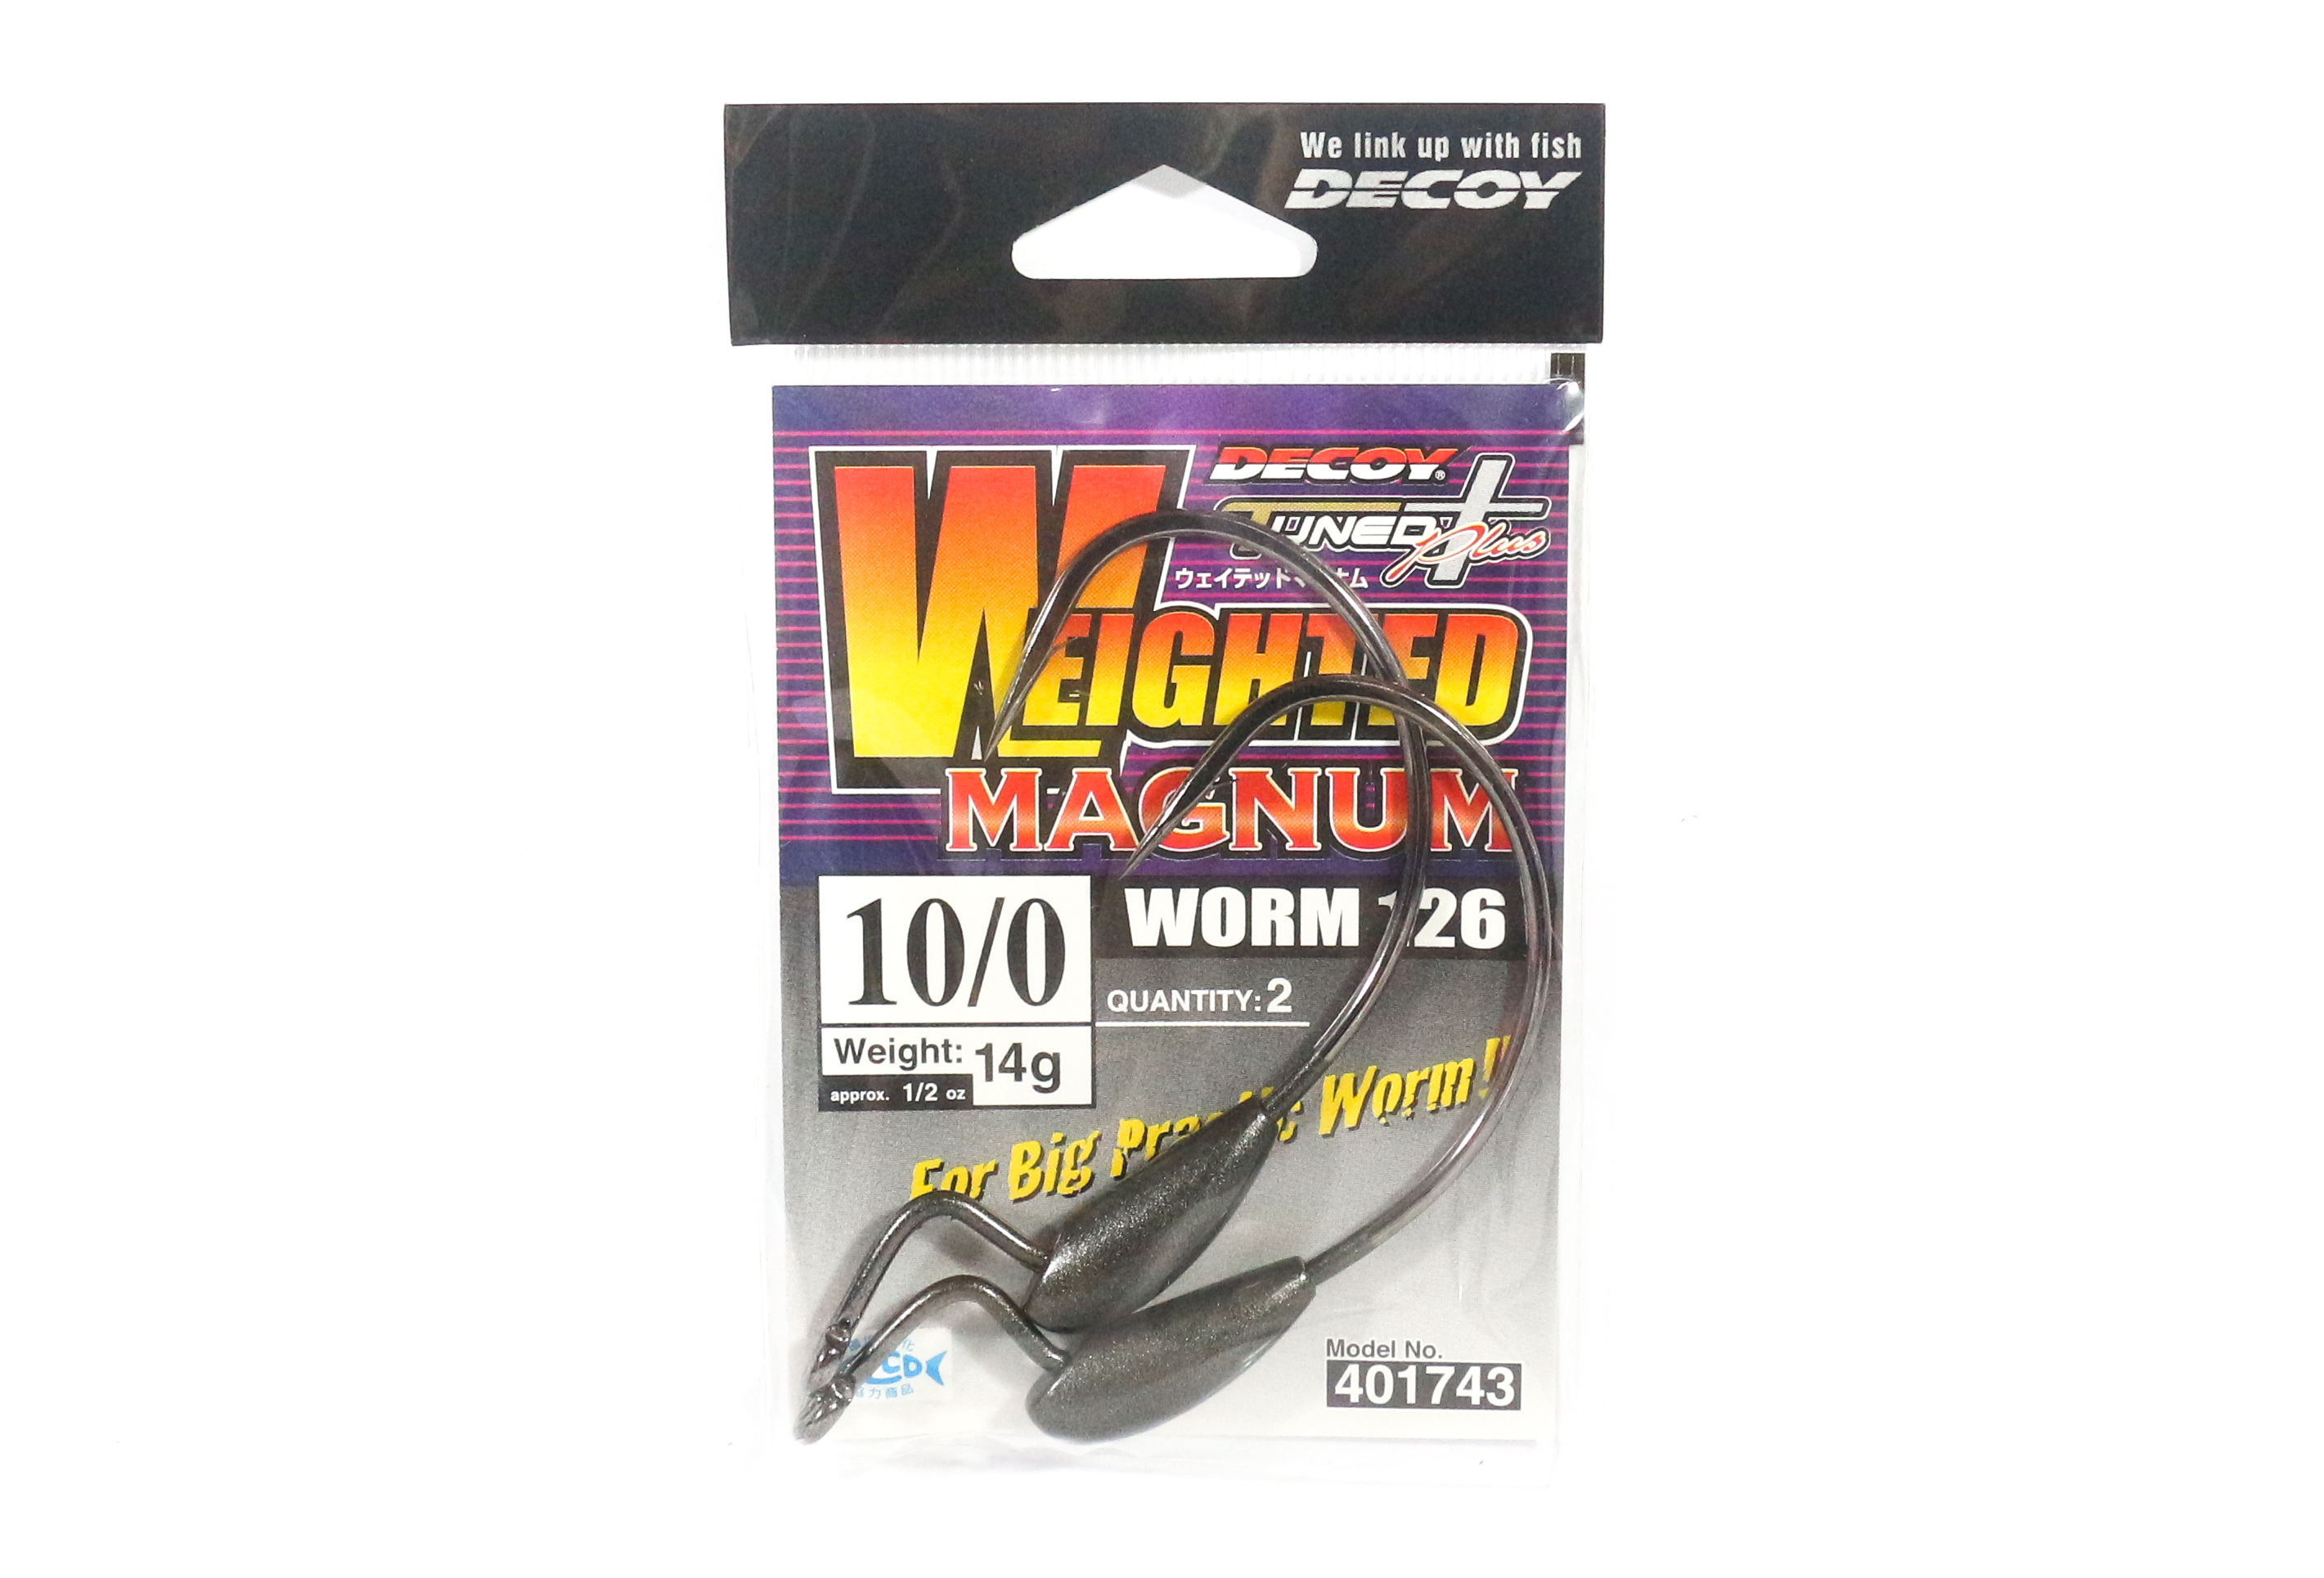 Decoy Worm 126 Weighted Magnum Worm Hook Size 10/0 , 14 grams (1743)